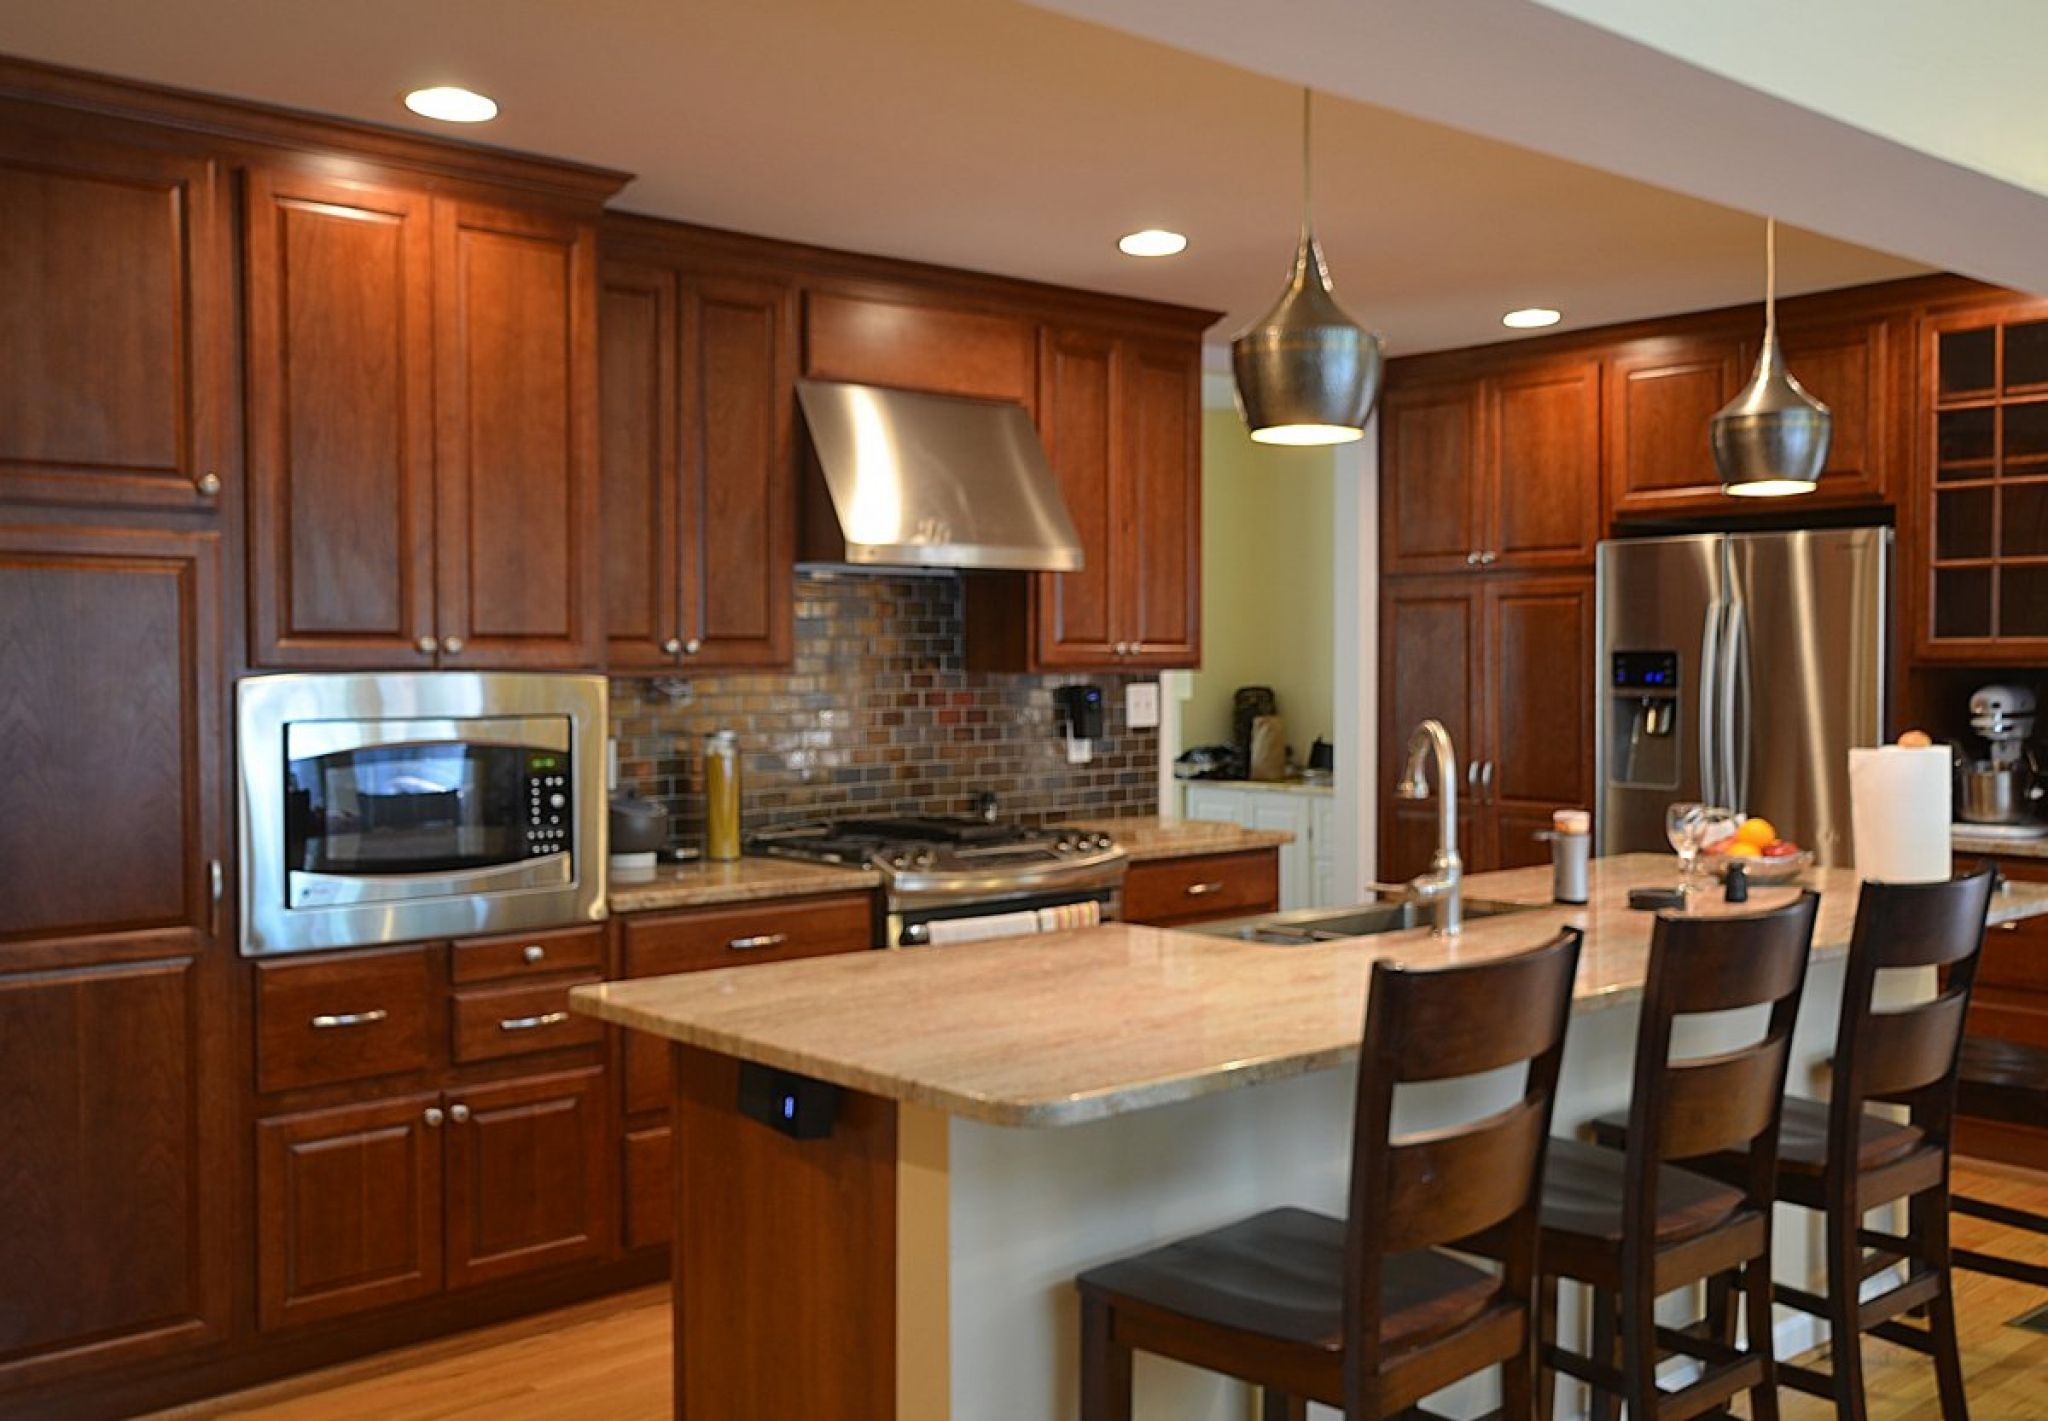 Kitchen Cabinets Northern Virginia Kitchen Cabinets Northern Virginia  Decorating Ideas For Kitchens .